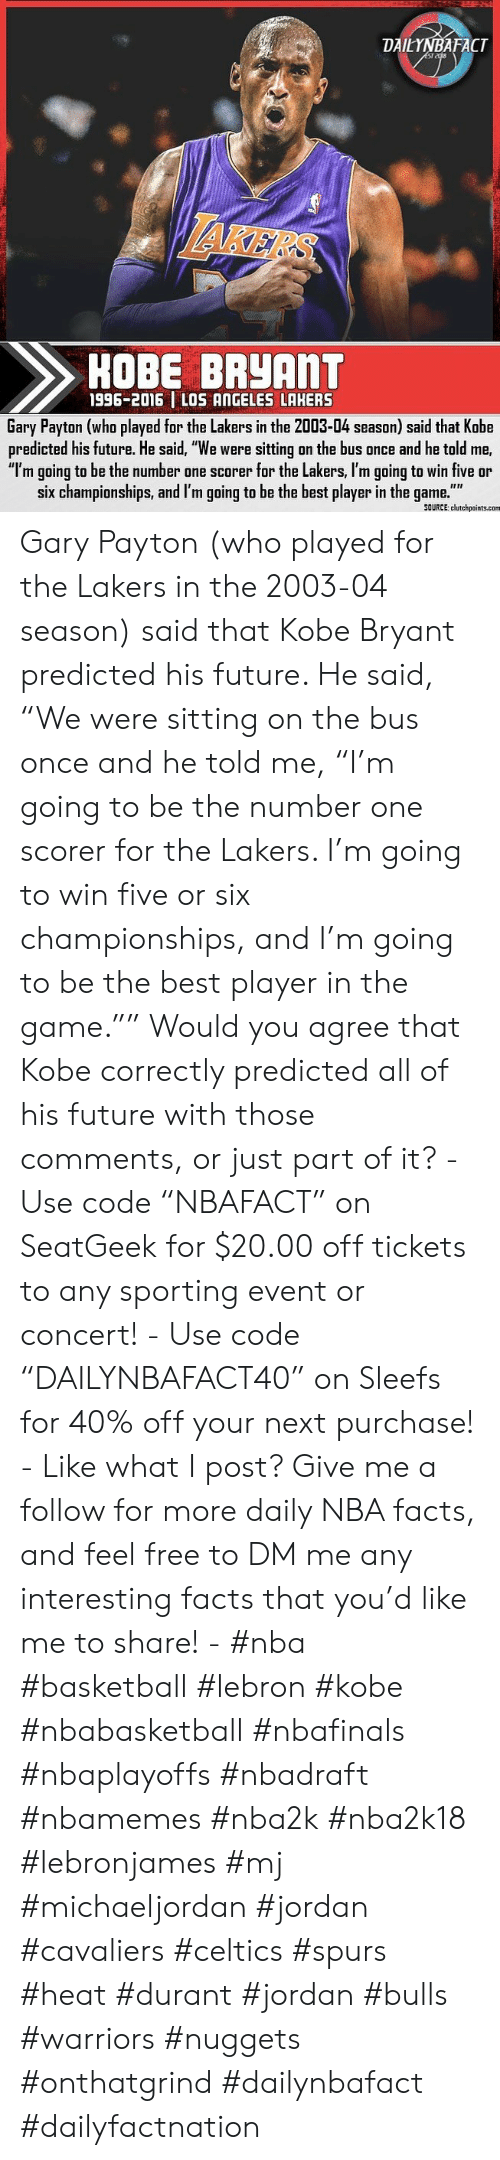 "Basketball, Facts, and Future: DAILYNBAFACT  ST2dis  HAKERS  HOBE BRYANT  1996-2016 LOS ANGELES LAHERS  Gary Payton (who played for the Lakers in the 2003-04 season) said that Kobe  predicted his future. He said, ""We were sitting on the bus once and he told me,  ""I'm going to be the number one scorer for the Lakers, I'm going to win five or  six championships, and I'm going to be the best player in the game.""  SOURCE: clutchpoints.com Gary Payton (who played for the Lakers in the 2003-04 season) said that Kobe Bryant predicted his future. He said, ""We were sitting on the bus once and he told me, ""I'm going to be the number one scorer for the Lakers. I'm going to win five or six championships, and I'm going to be the best player in the game."""" Would you agree that Kobe correctly predicted all of his future with those comments, or just part of it? - Use code ""NBAFACT"" on SeatGeek for $20.00 off tickets to any sporting event or concert! - Use code ""DAILYNBAFACT40"" on Sleefs for 40% off your next purchase! - Like what I post? Give me a follow for more daily NBA facts, and feel free to DM me any interesting facts that you'd like me to share! - #nba #basketball #lebron #kobe #nbabasketball #nbafinals #nbaplayoffs #nbadraft #nbamemes #nba2k #nba2k18 #lebronjames #mj #michaeljordan #jordan #cavaliers #celtics #spurs #heat #durant #jordan #bulls #warriors #nuggets #onthatgrind #dailynbafact #dailyfactnation"